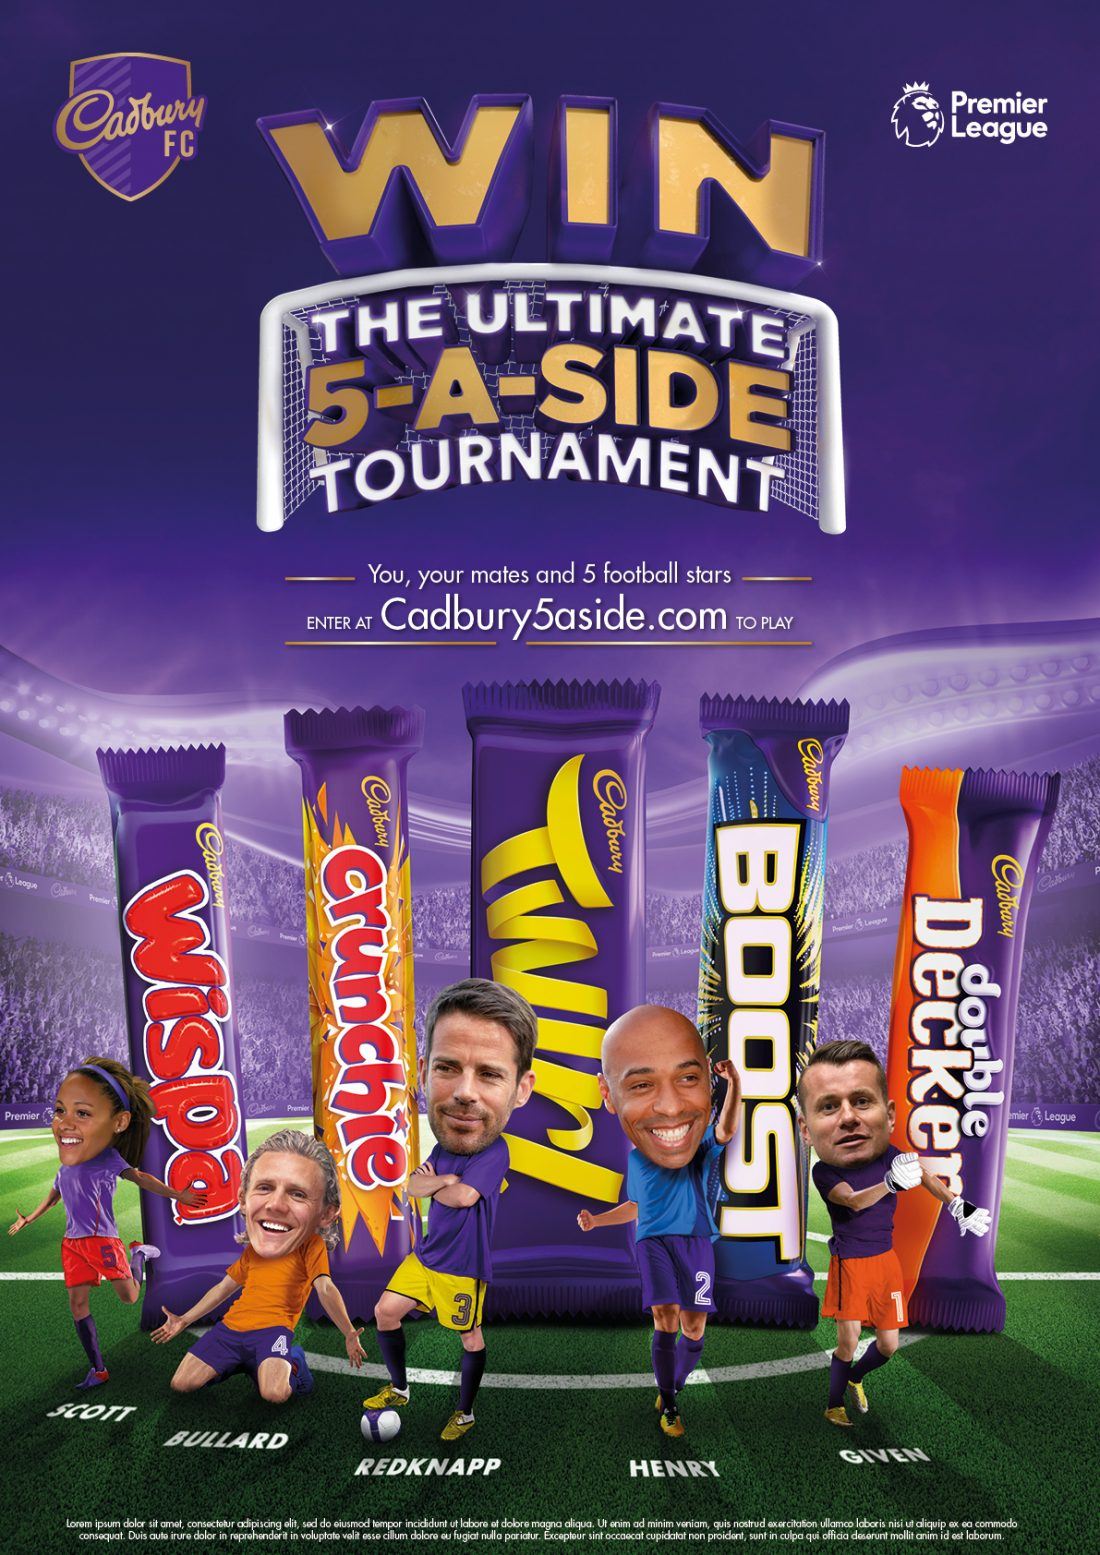 The Cadbury ad starring Alex Scott, who played for Arsenal before retiring earlier this year. She has 140 caps for England and is now a pundit for the BBC;